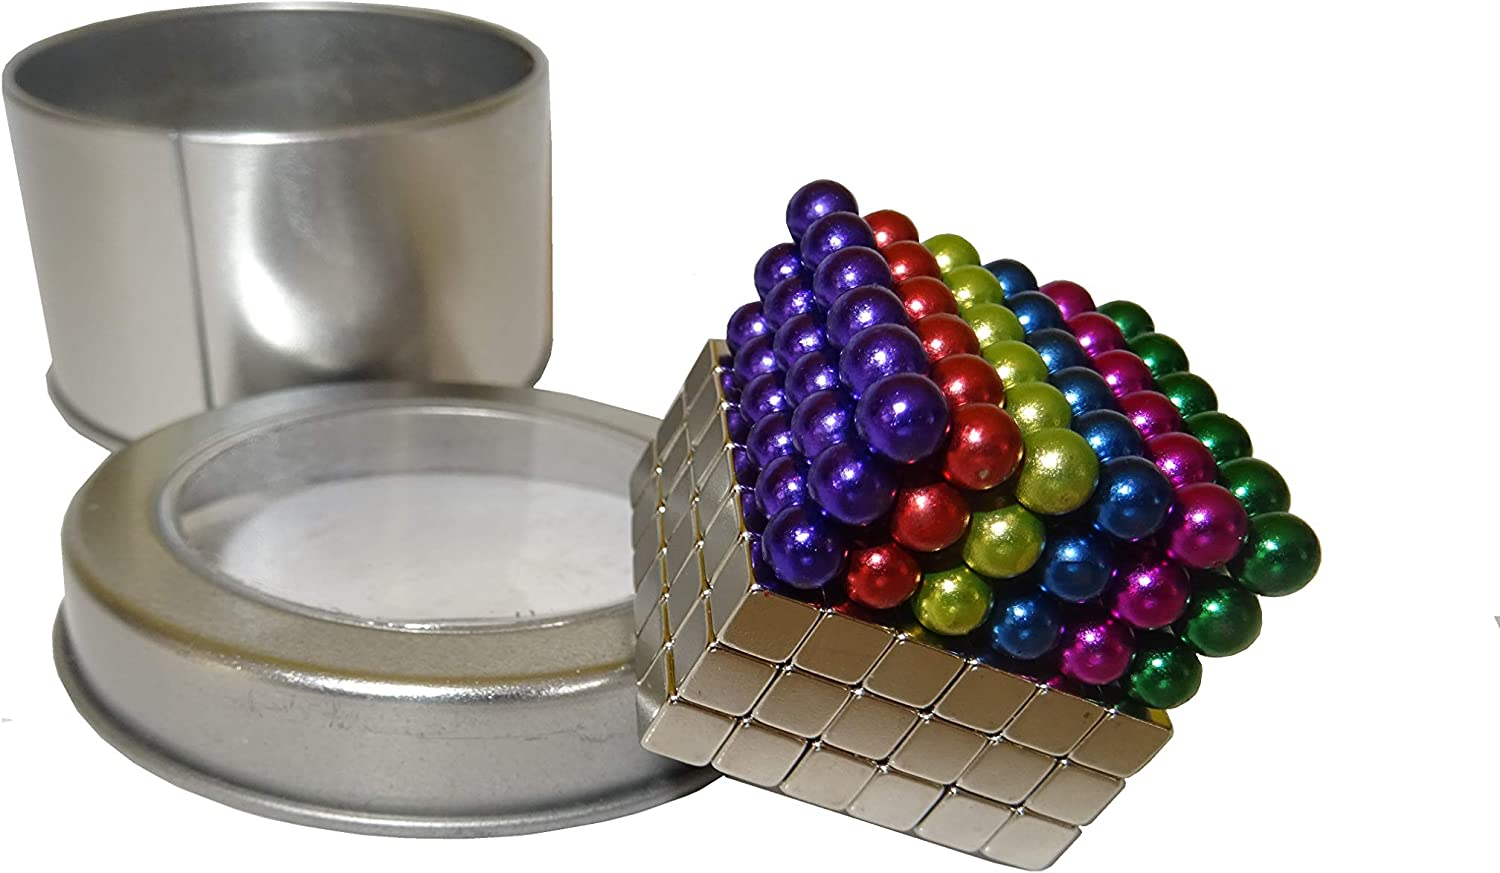 The crazy construction magnets for your office desk. 216 x 5mm Magnetic Balls and Cubes KidsBDragons offers Maji Puk Fast UK delivery